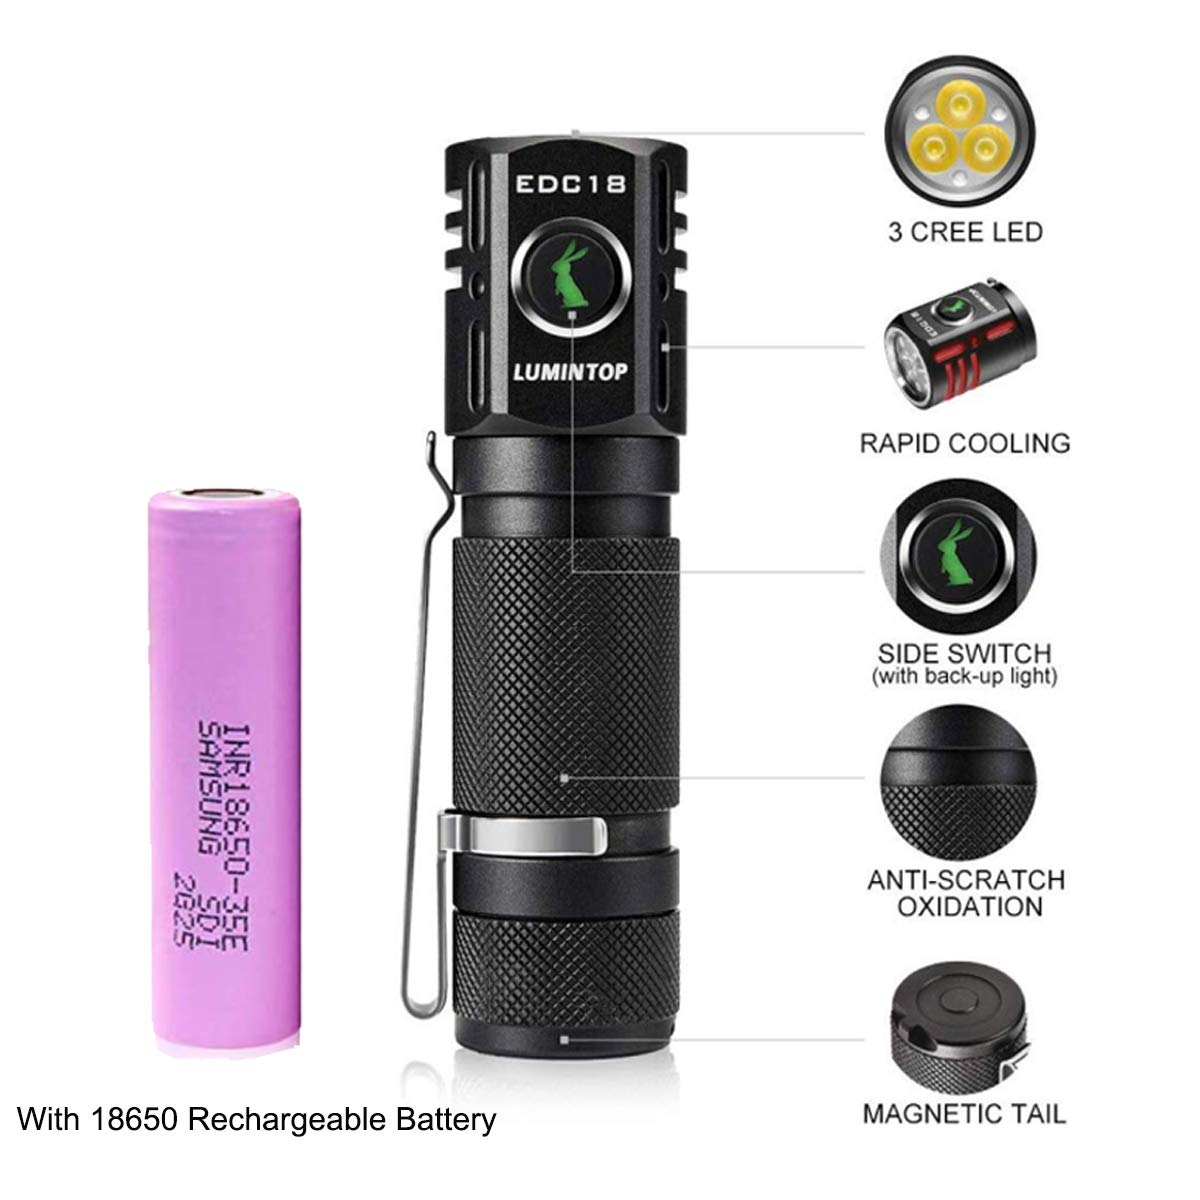 Emergency Outdoor 1Pack Led Tactical Flashlight,Super Bright Flashlights High Lumens Handheld Torch with 2x Rechargeable 18650 Battery for Camping Everyday Portable Flashlights